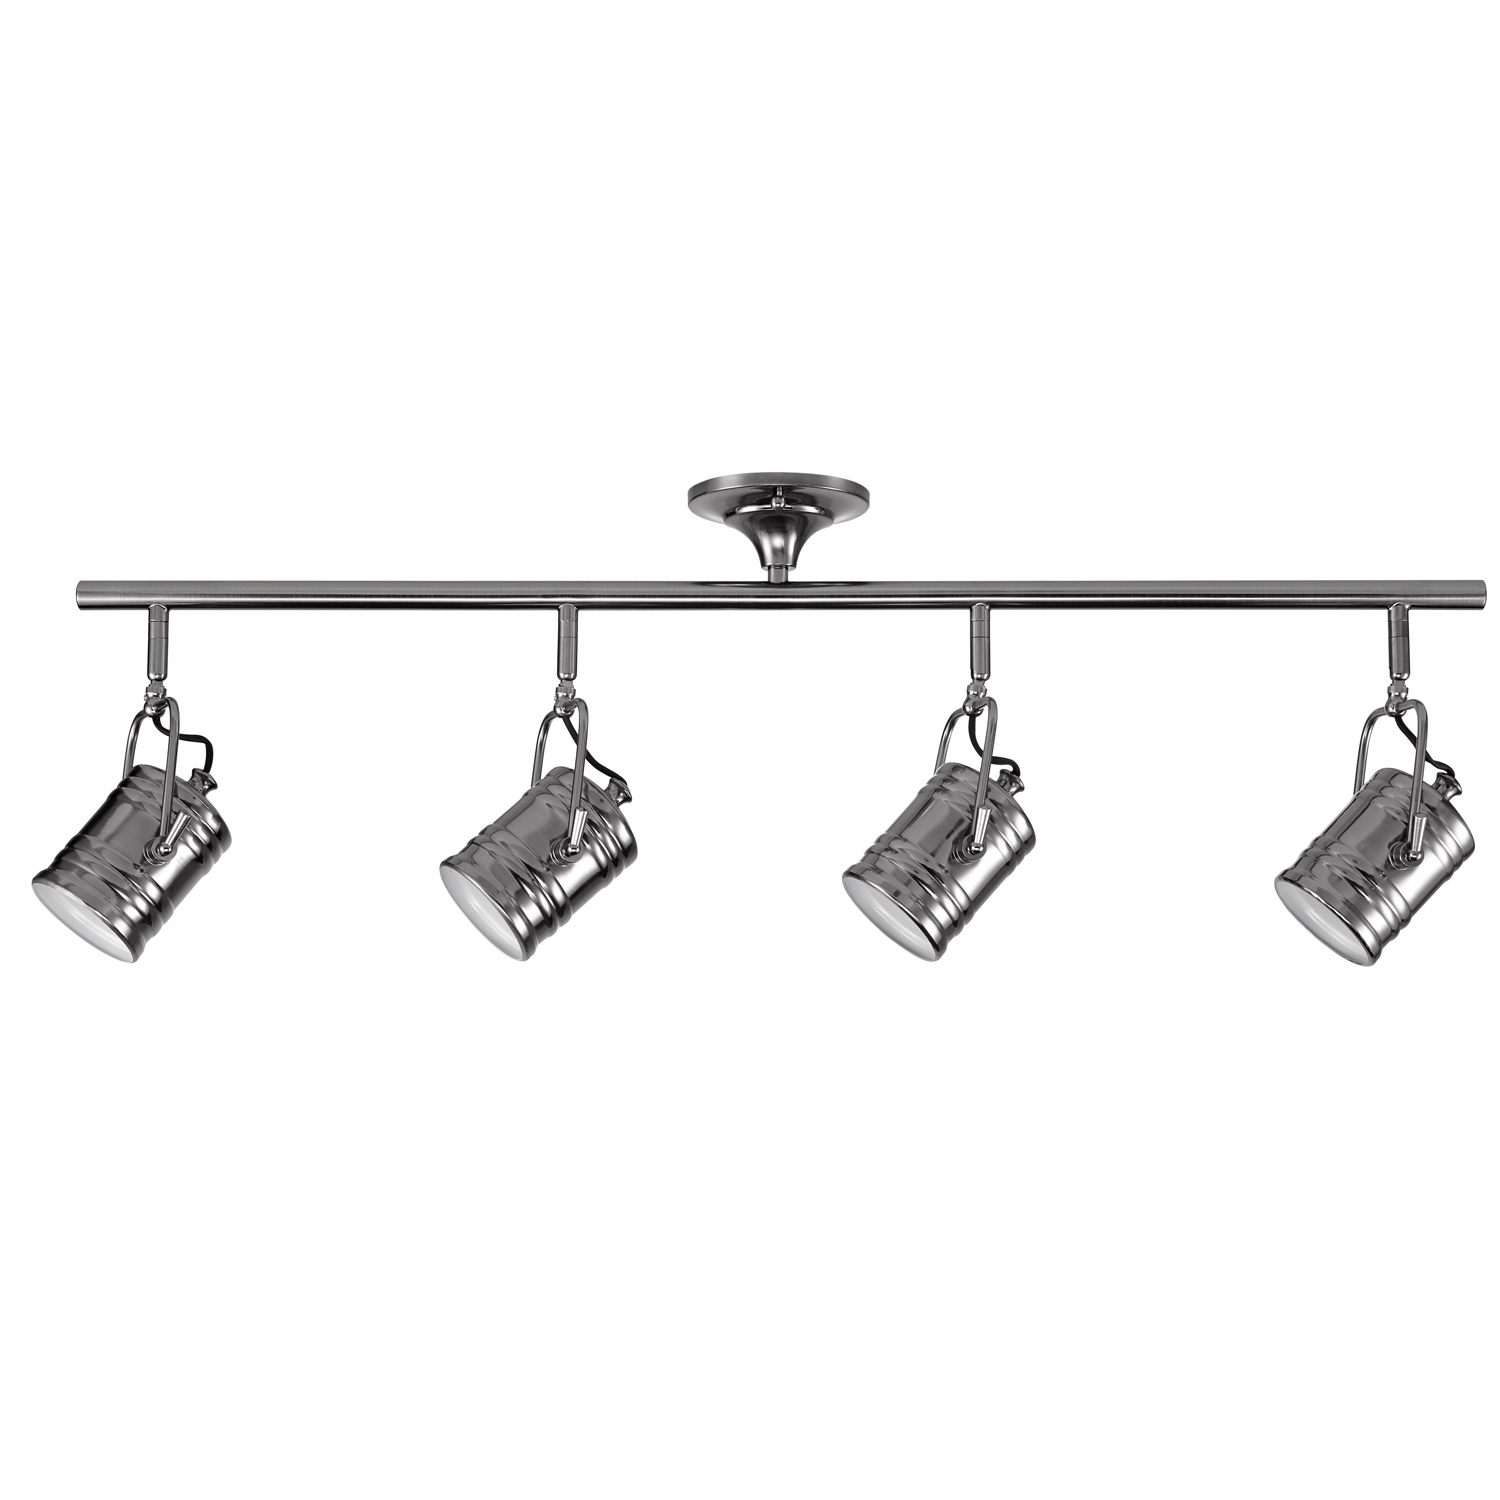 Globe Electric Wyatt 4-Light Dark Shiny Pewter Track Lighting, LED Bulbs Included, 59198 by Globe Electric